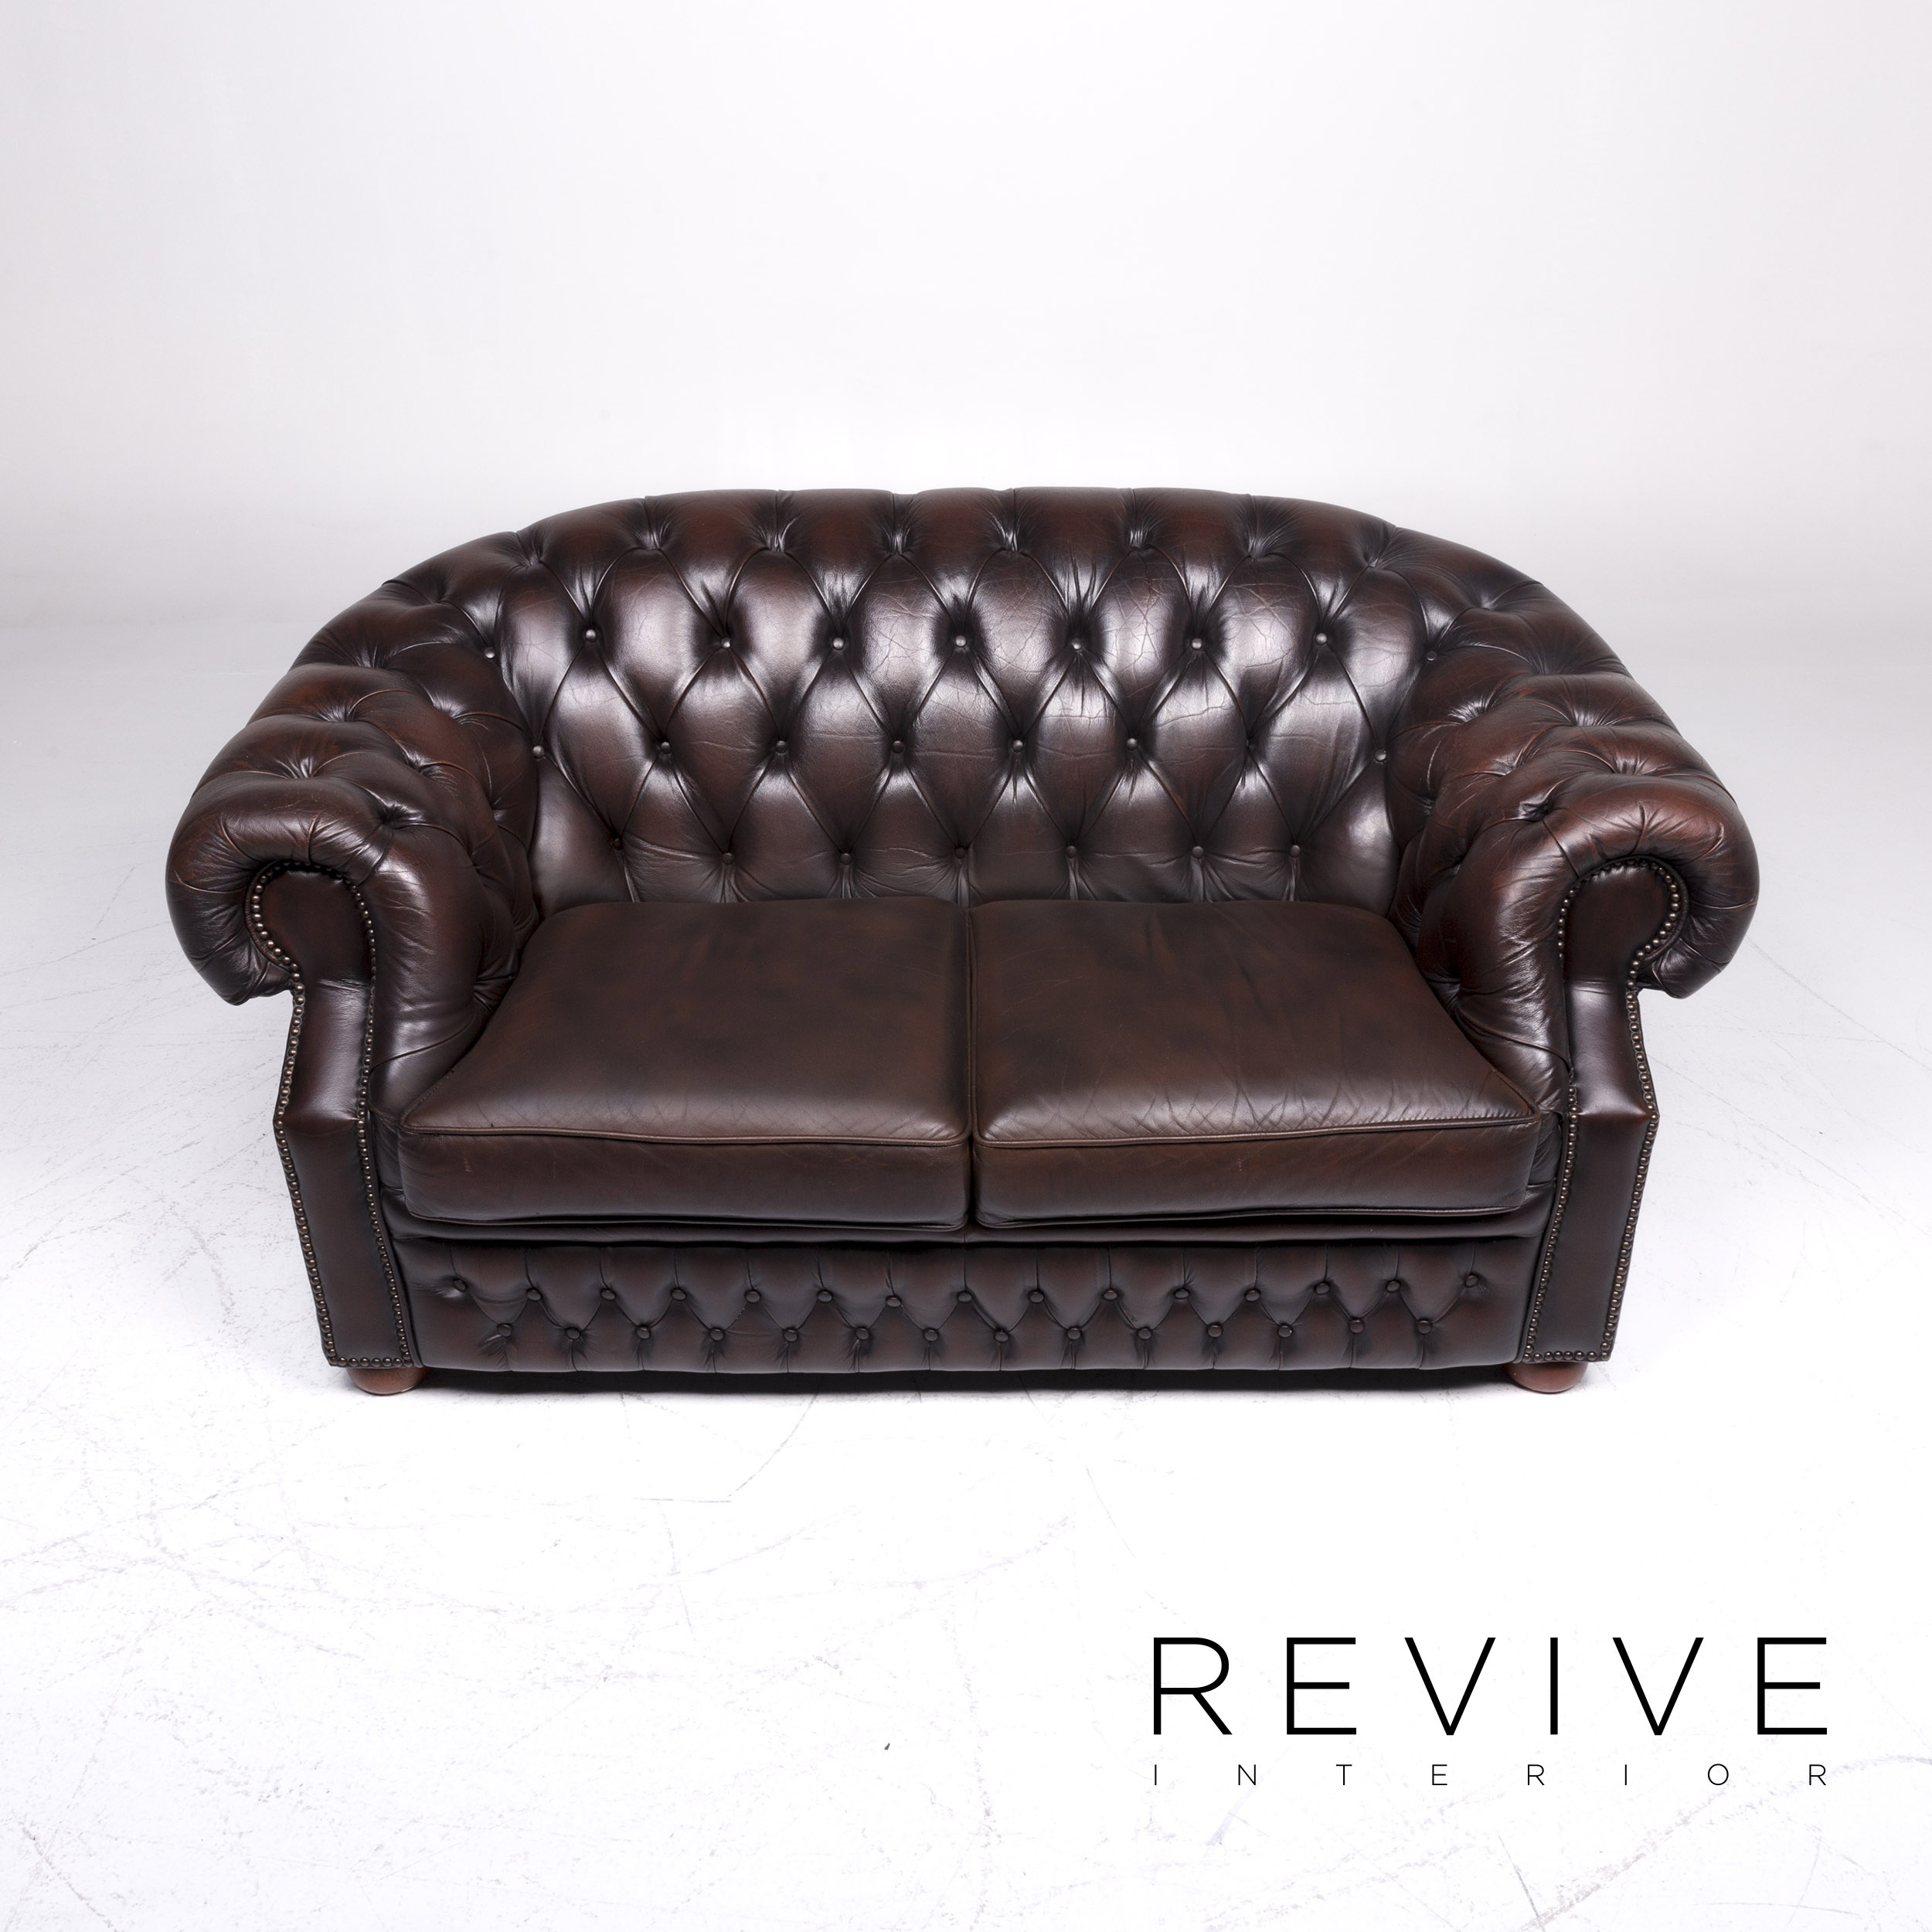 centurion chesterfield leather sofa set brown two seater retro 9270 ebay